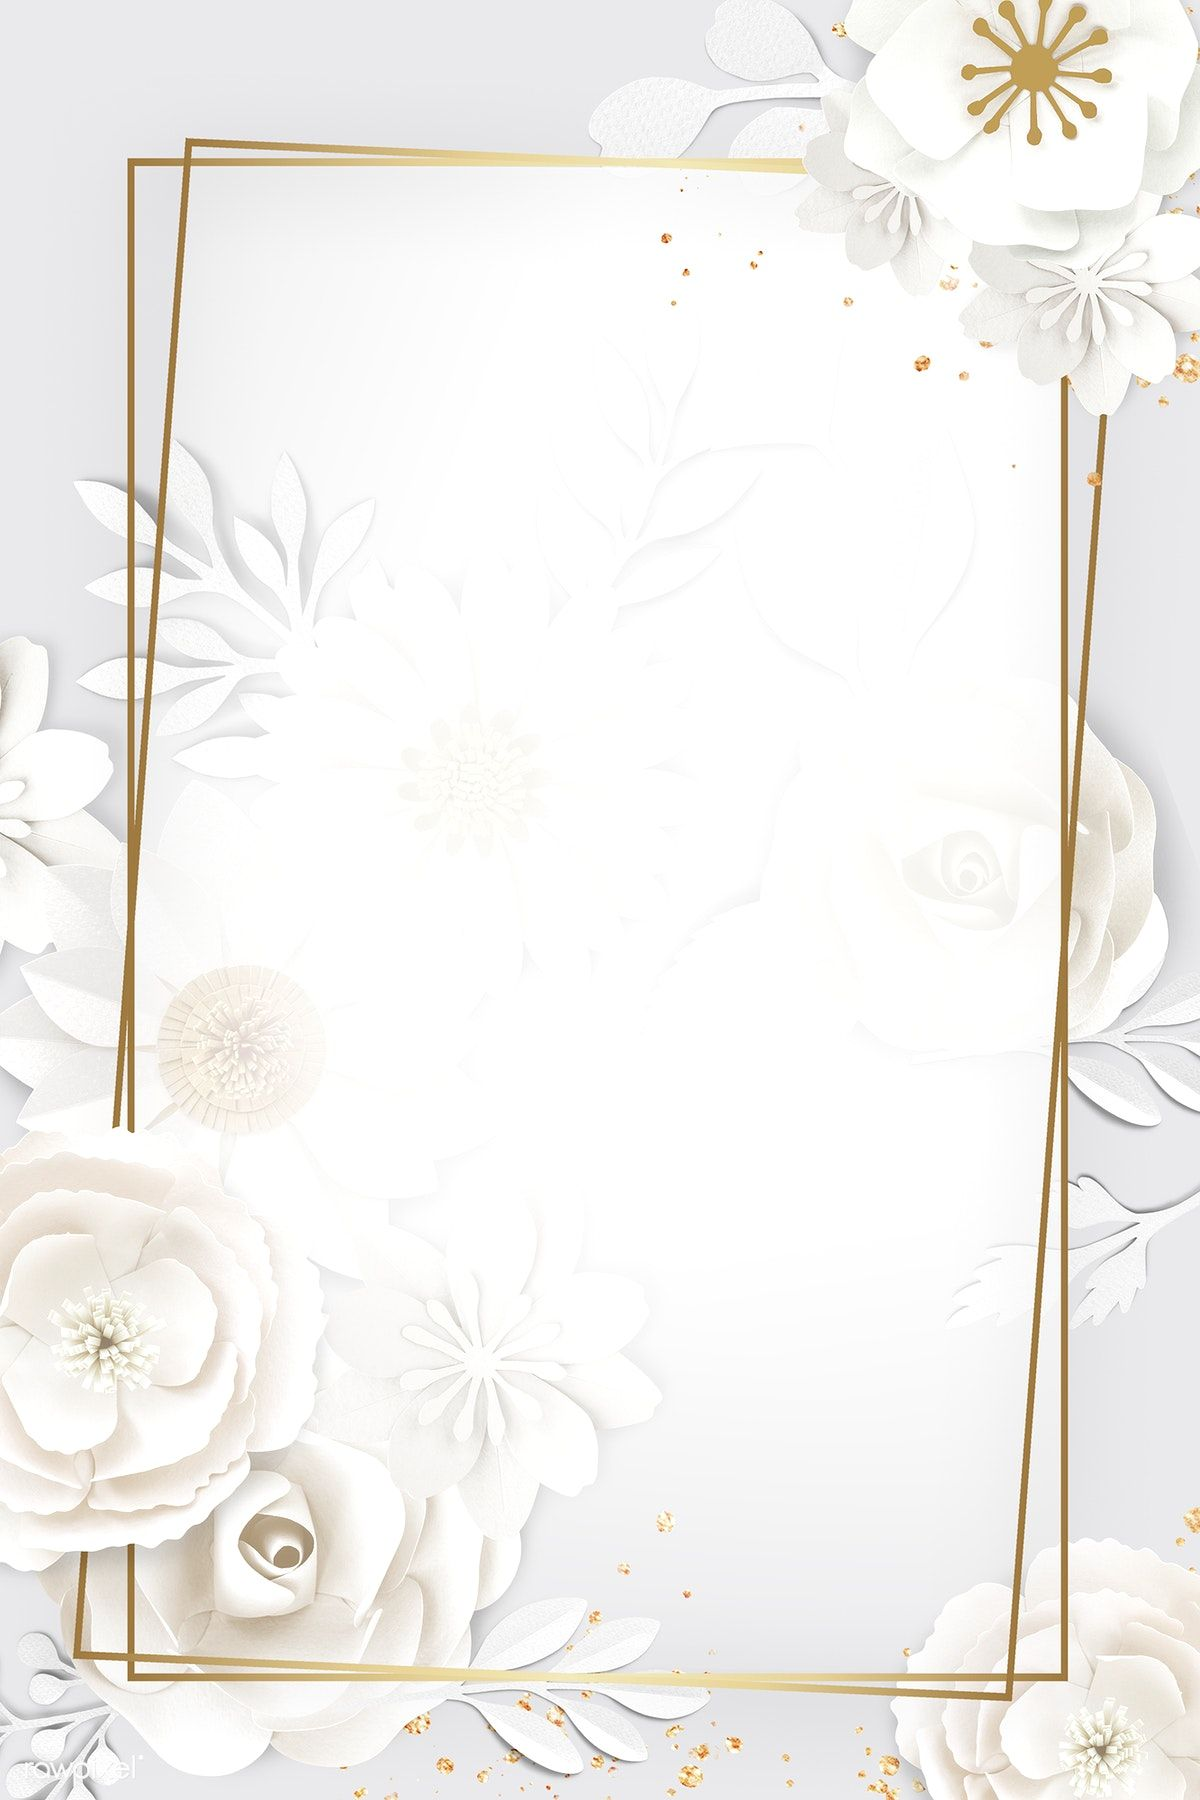 Download Premium Psd Of Rectangle Paper Craft Flower Frame